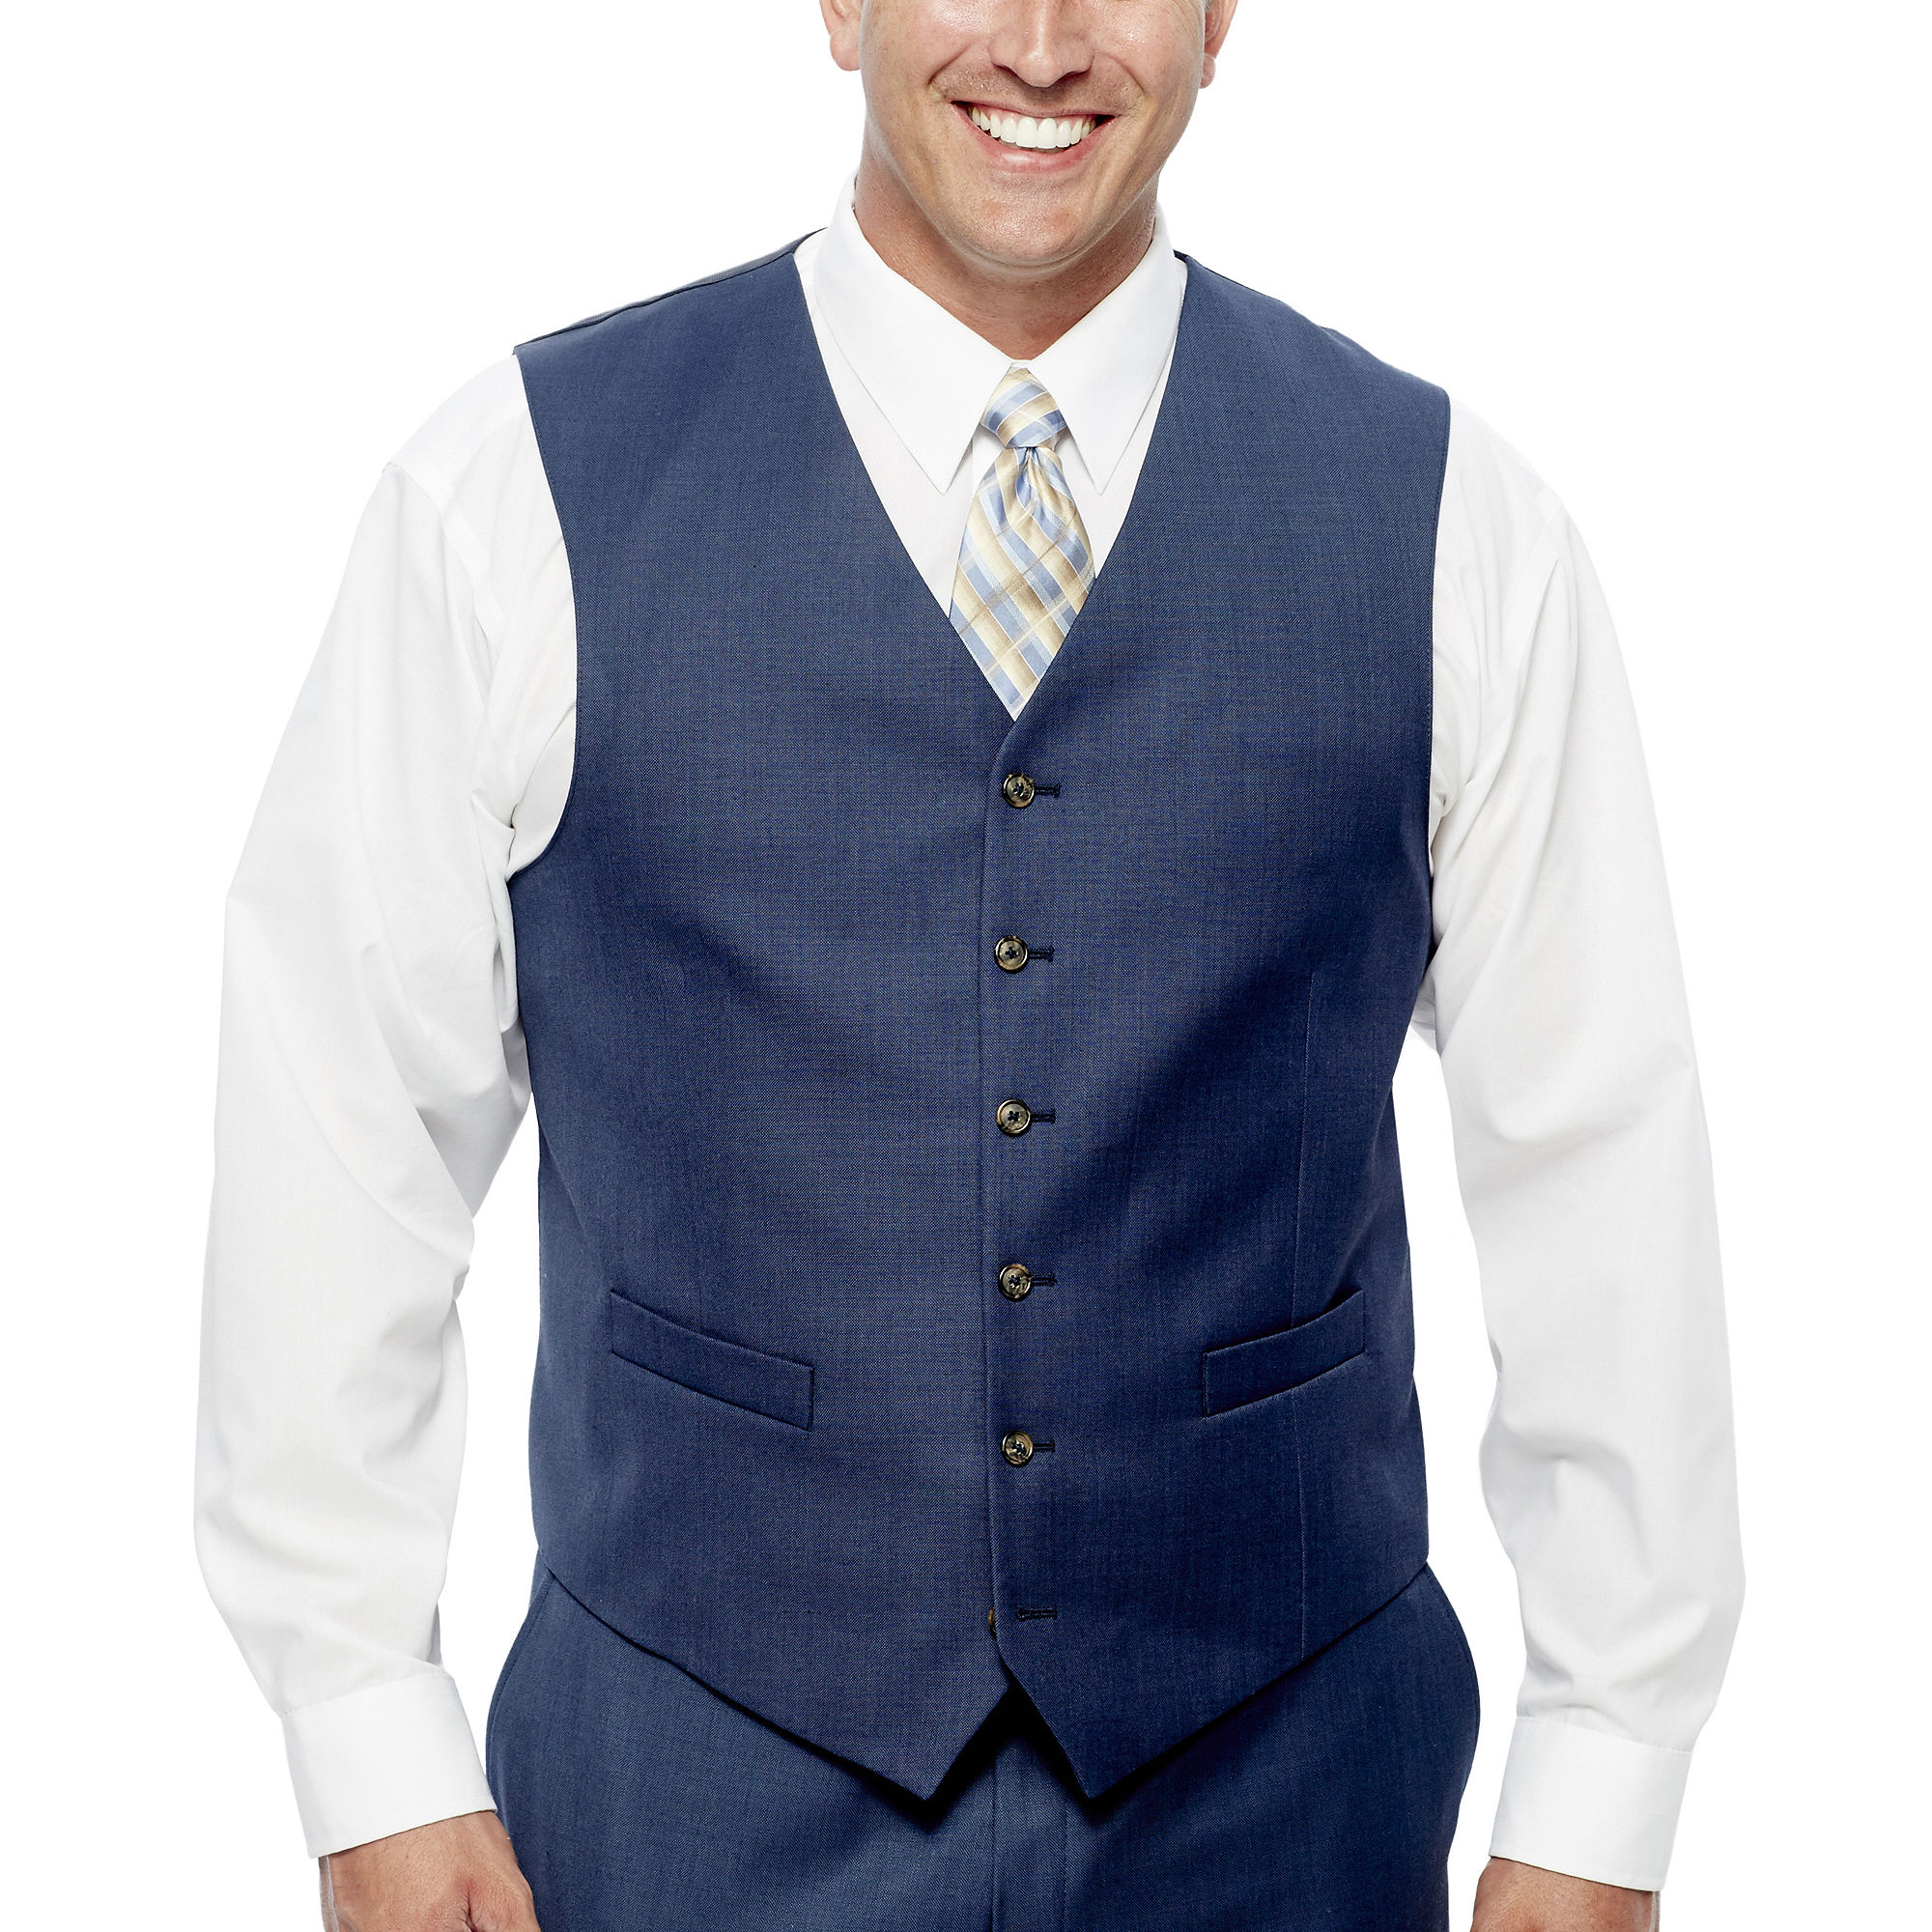 Stafford Travel Medium Blue Suit Vest - Big & Tall Fit